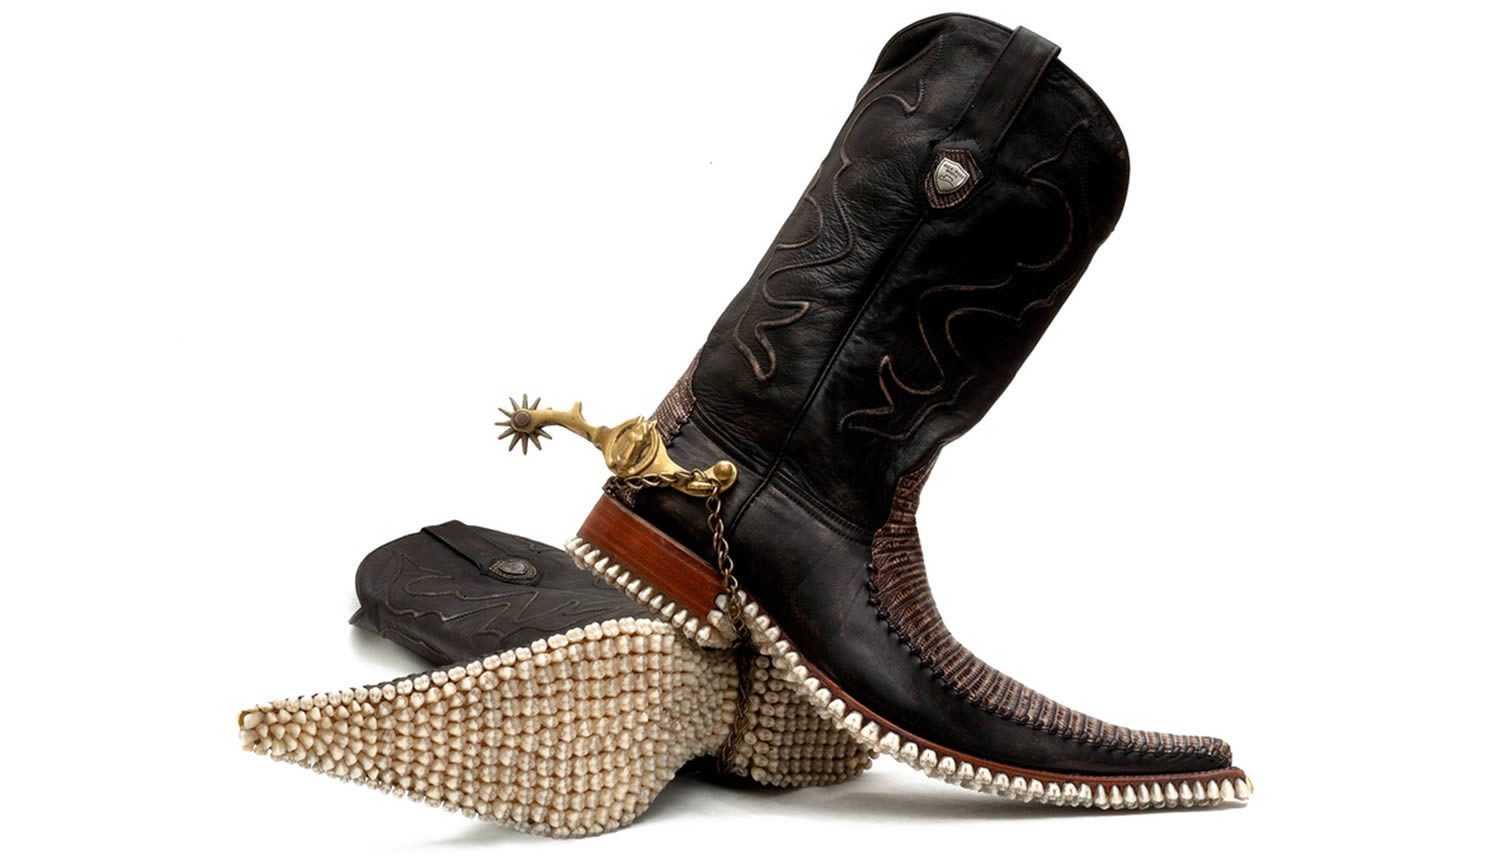 cowboy boots with teeth soles, FANTICH & YOUNG